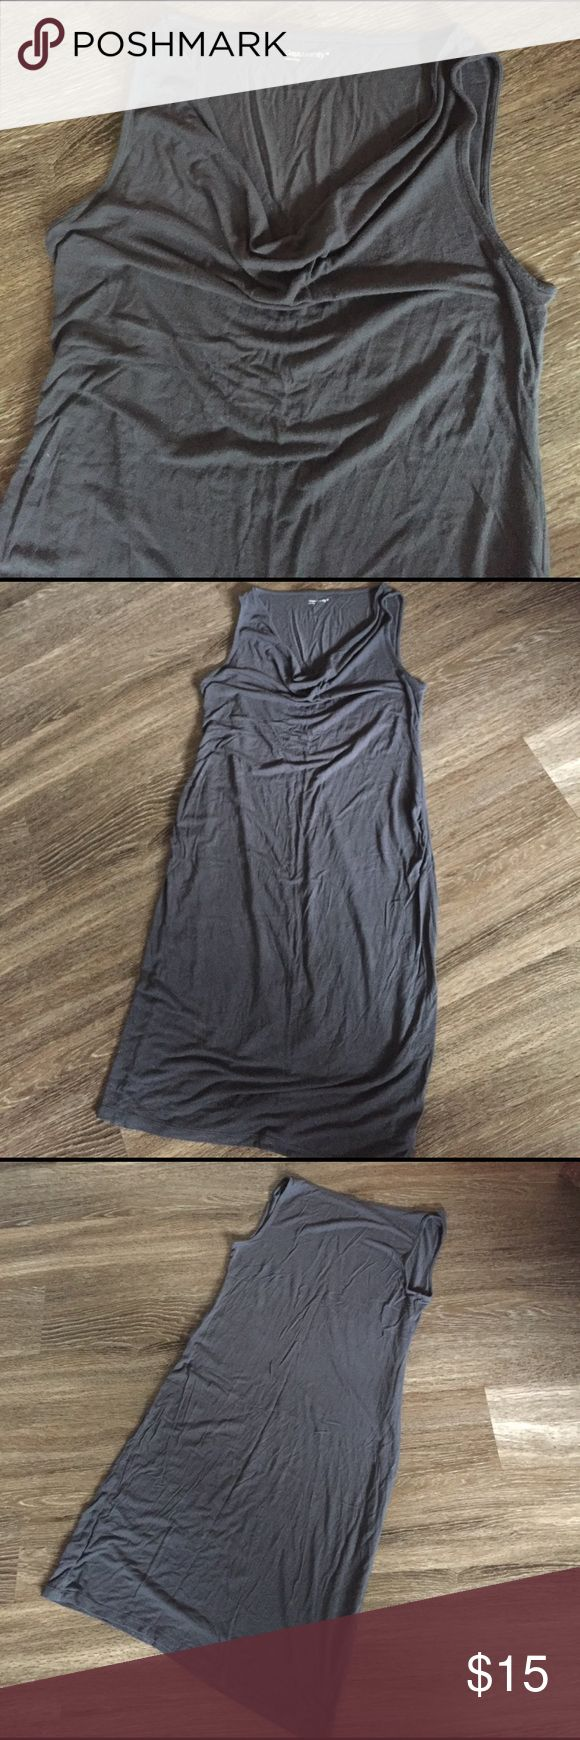 Gap Maternity maxi dress Very comfy  cotton maxi dress for the growing belly. Pretty gun metal color. Comfortable for spring or summer wear or just lounging. Open to offers. GAP Dresses Maxi